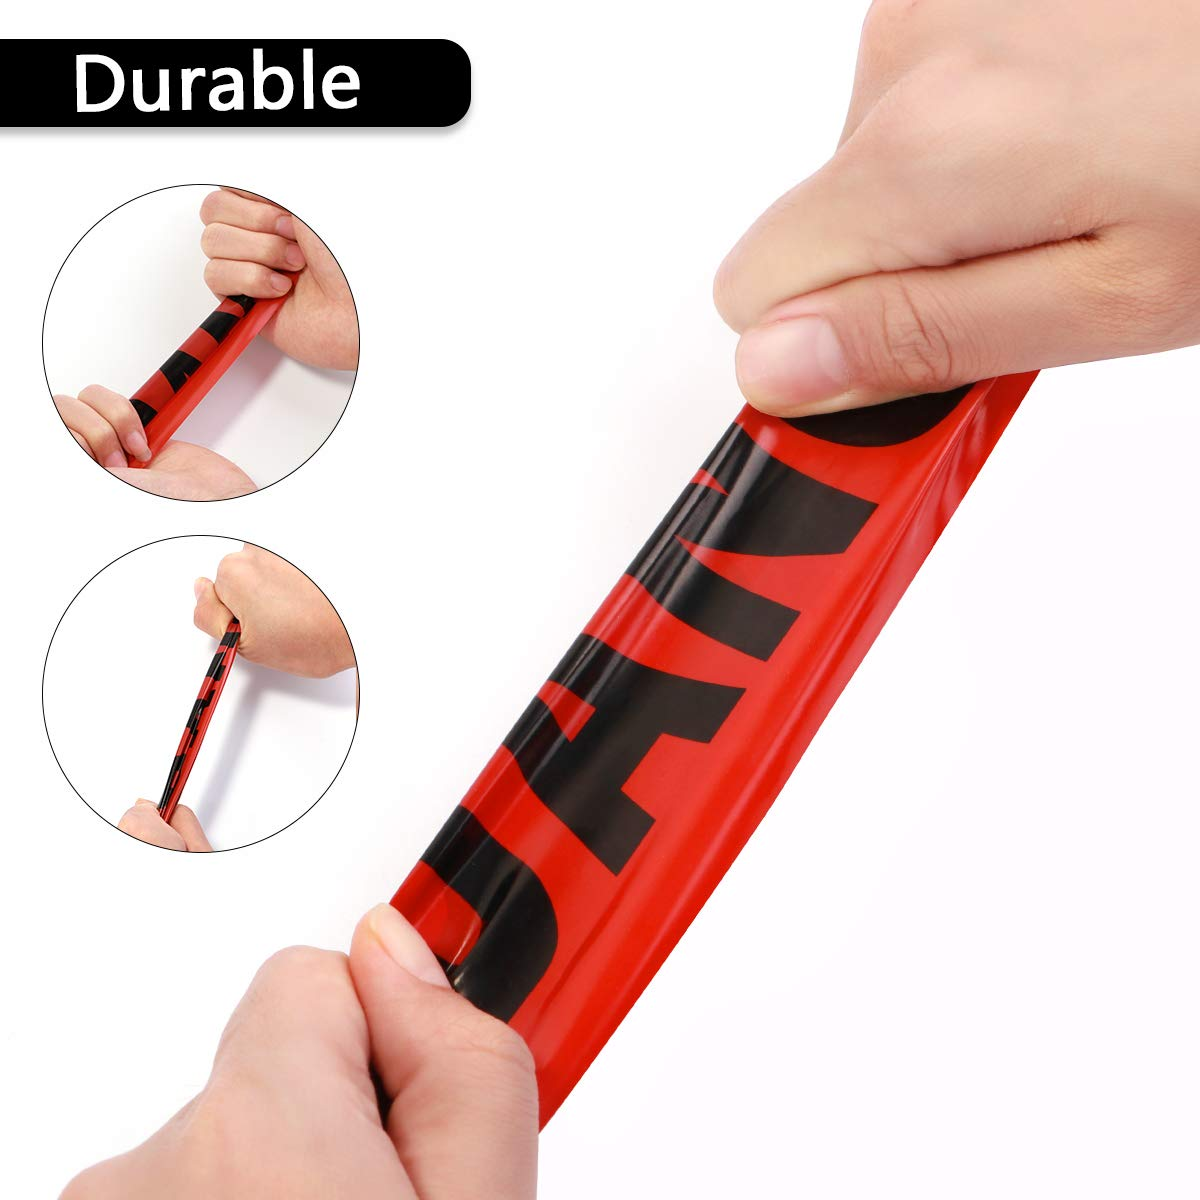 Red UKCOCO 100M Barricade Ribbon Danger Tape Safety Bright Red Warning Tape Portable Roll for Law Enforcement Construction Public Works Safety